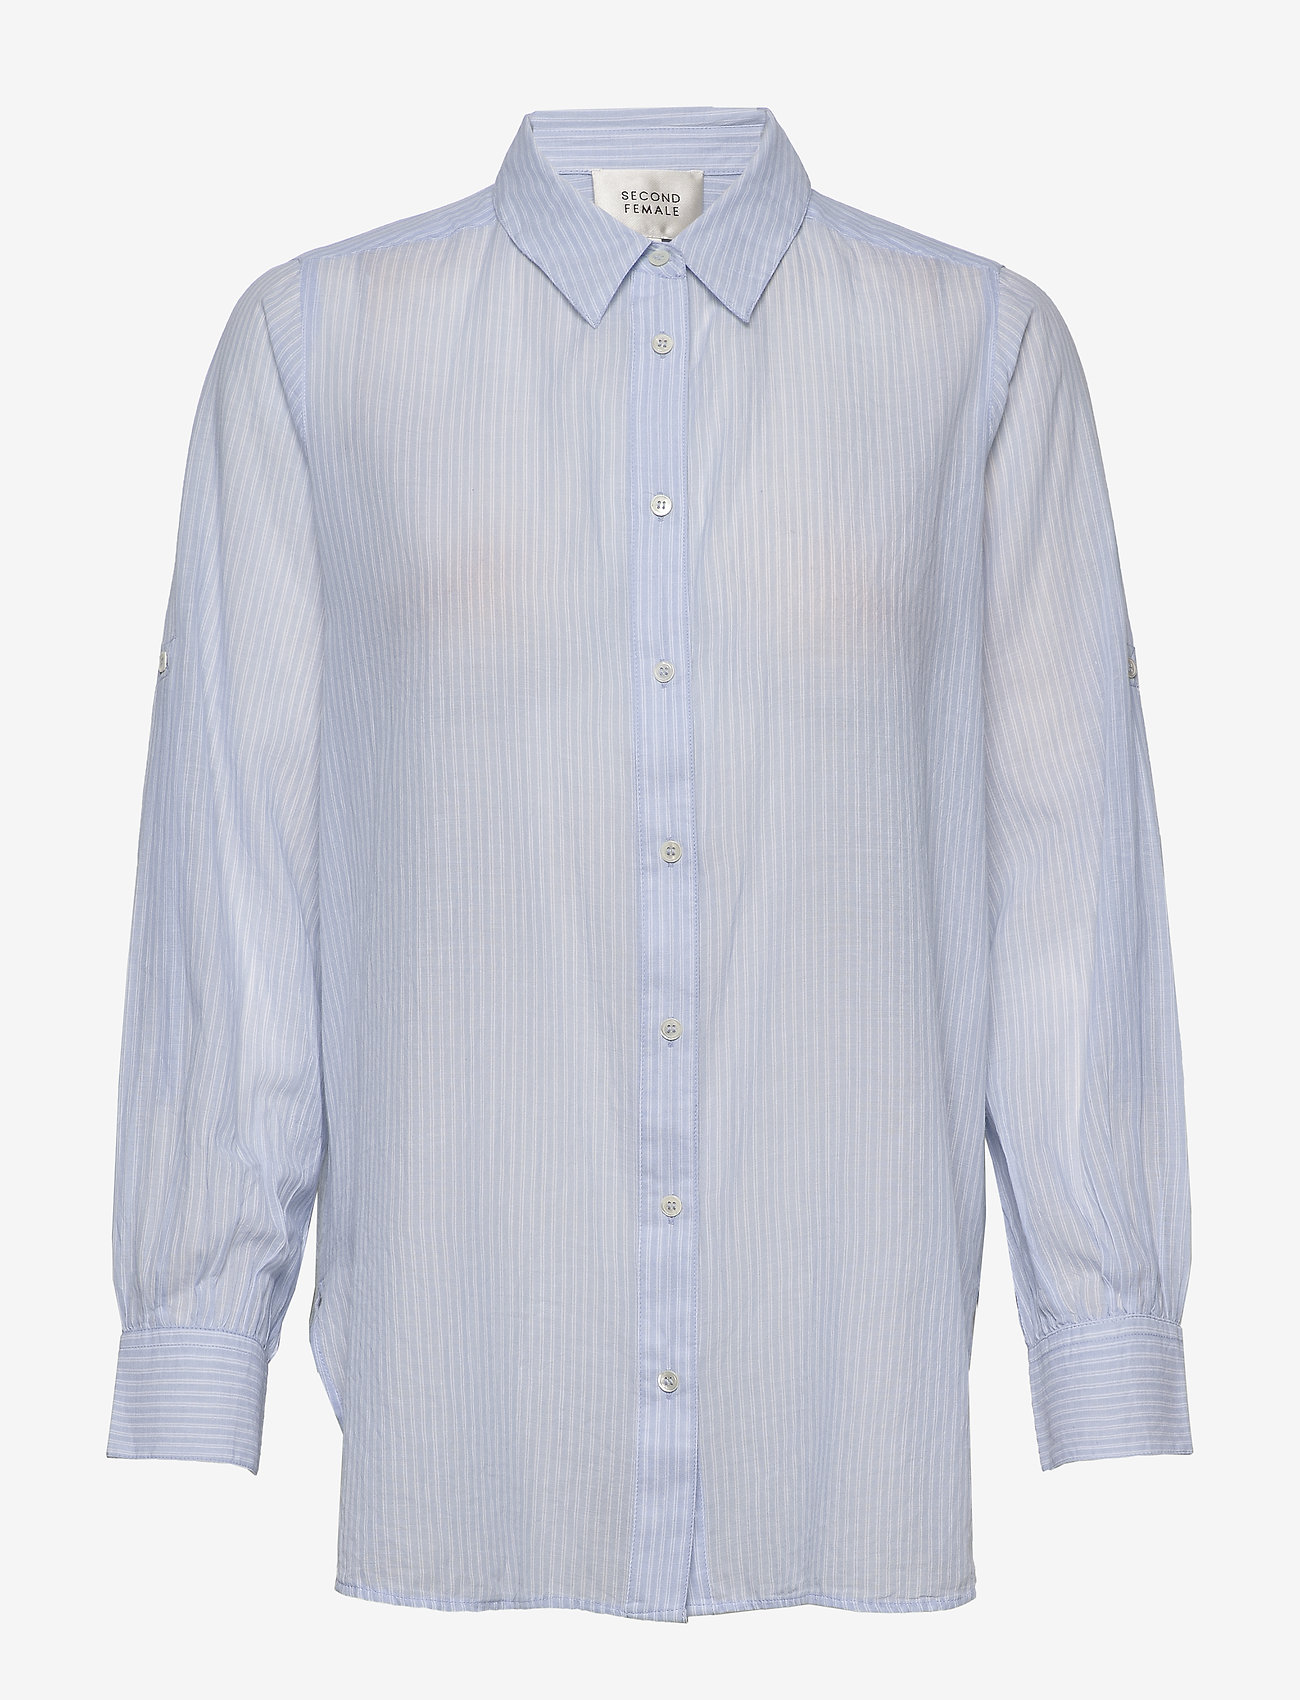 Dominus Ls Shirt (Chambray Blue) - Second Female opb7RM